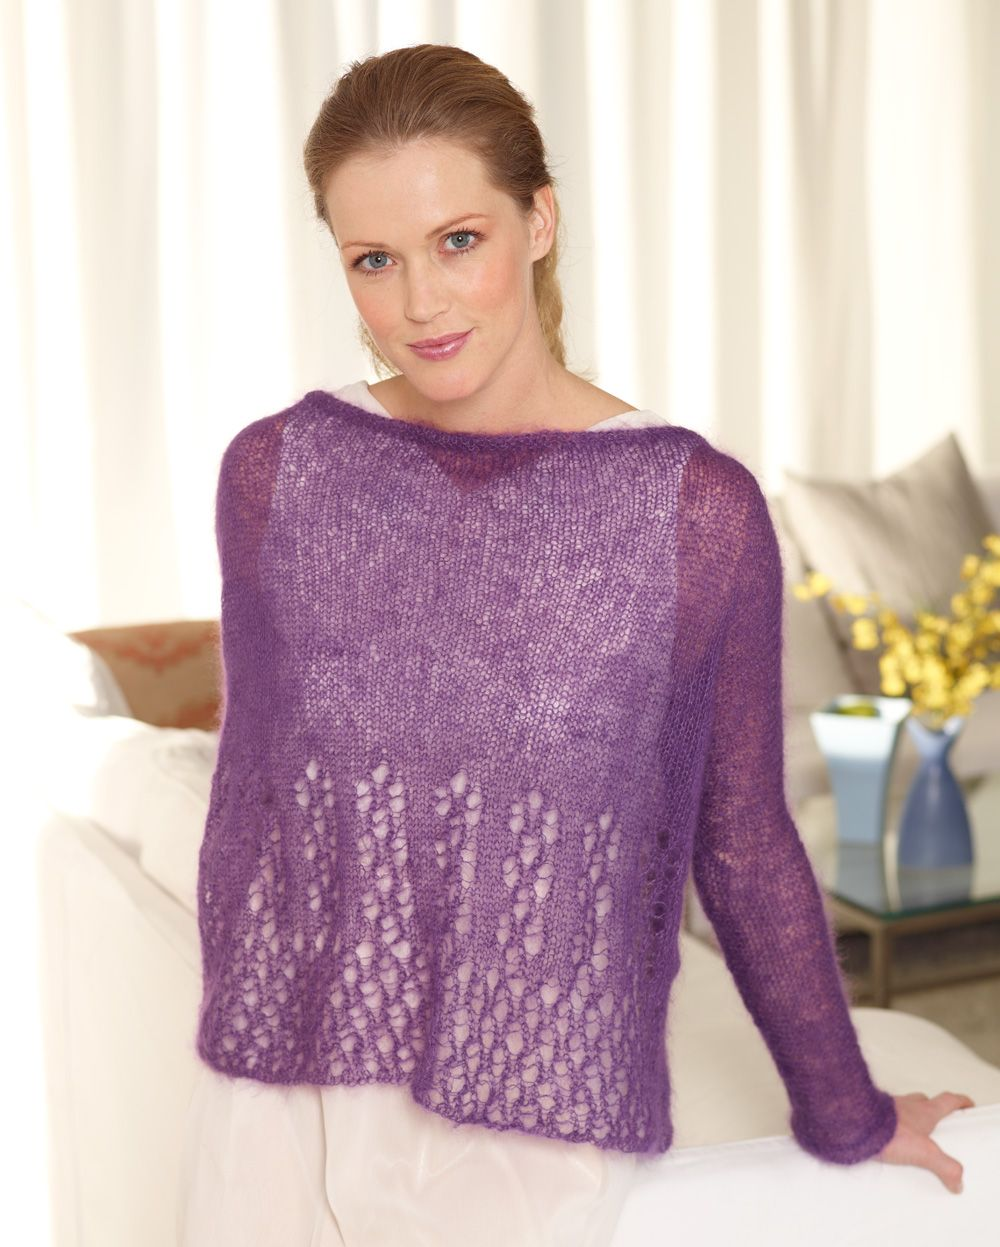 Make out luxe lace pullover with our featured yarn lb collection make out luxe lace pullover with our featured yarn lb collection silk mohair save on this yarn for a limited time free knit pattern calls for 3 5 bankloansurffo Images